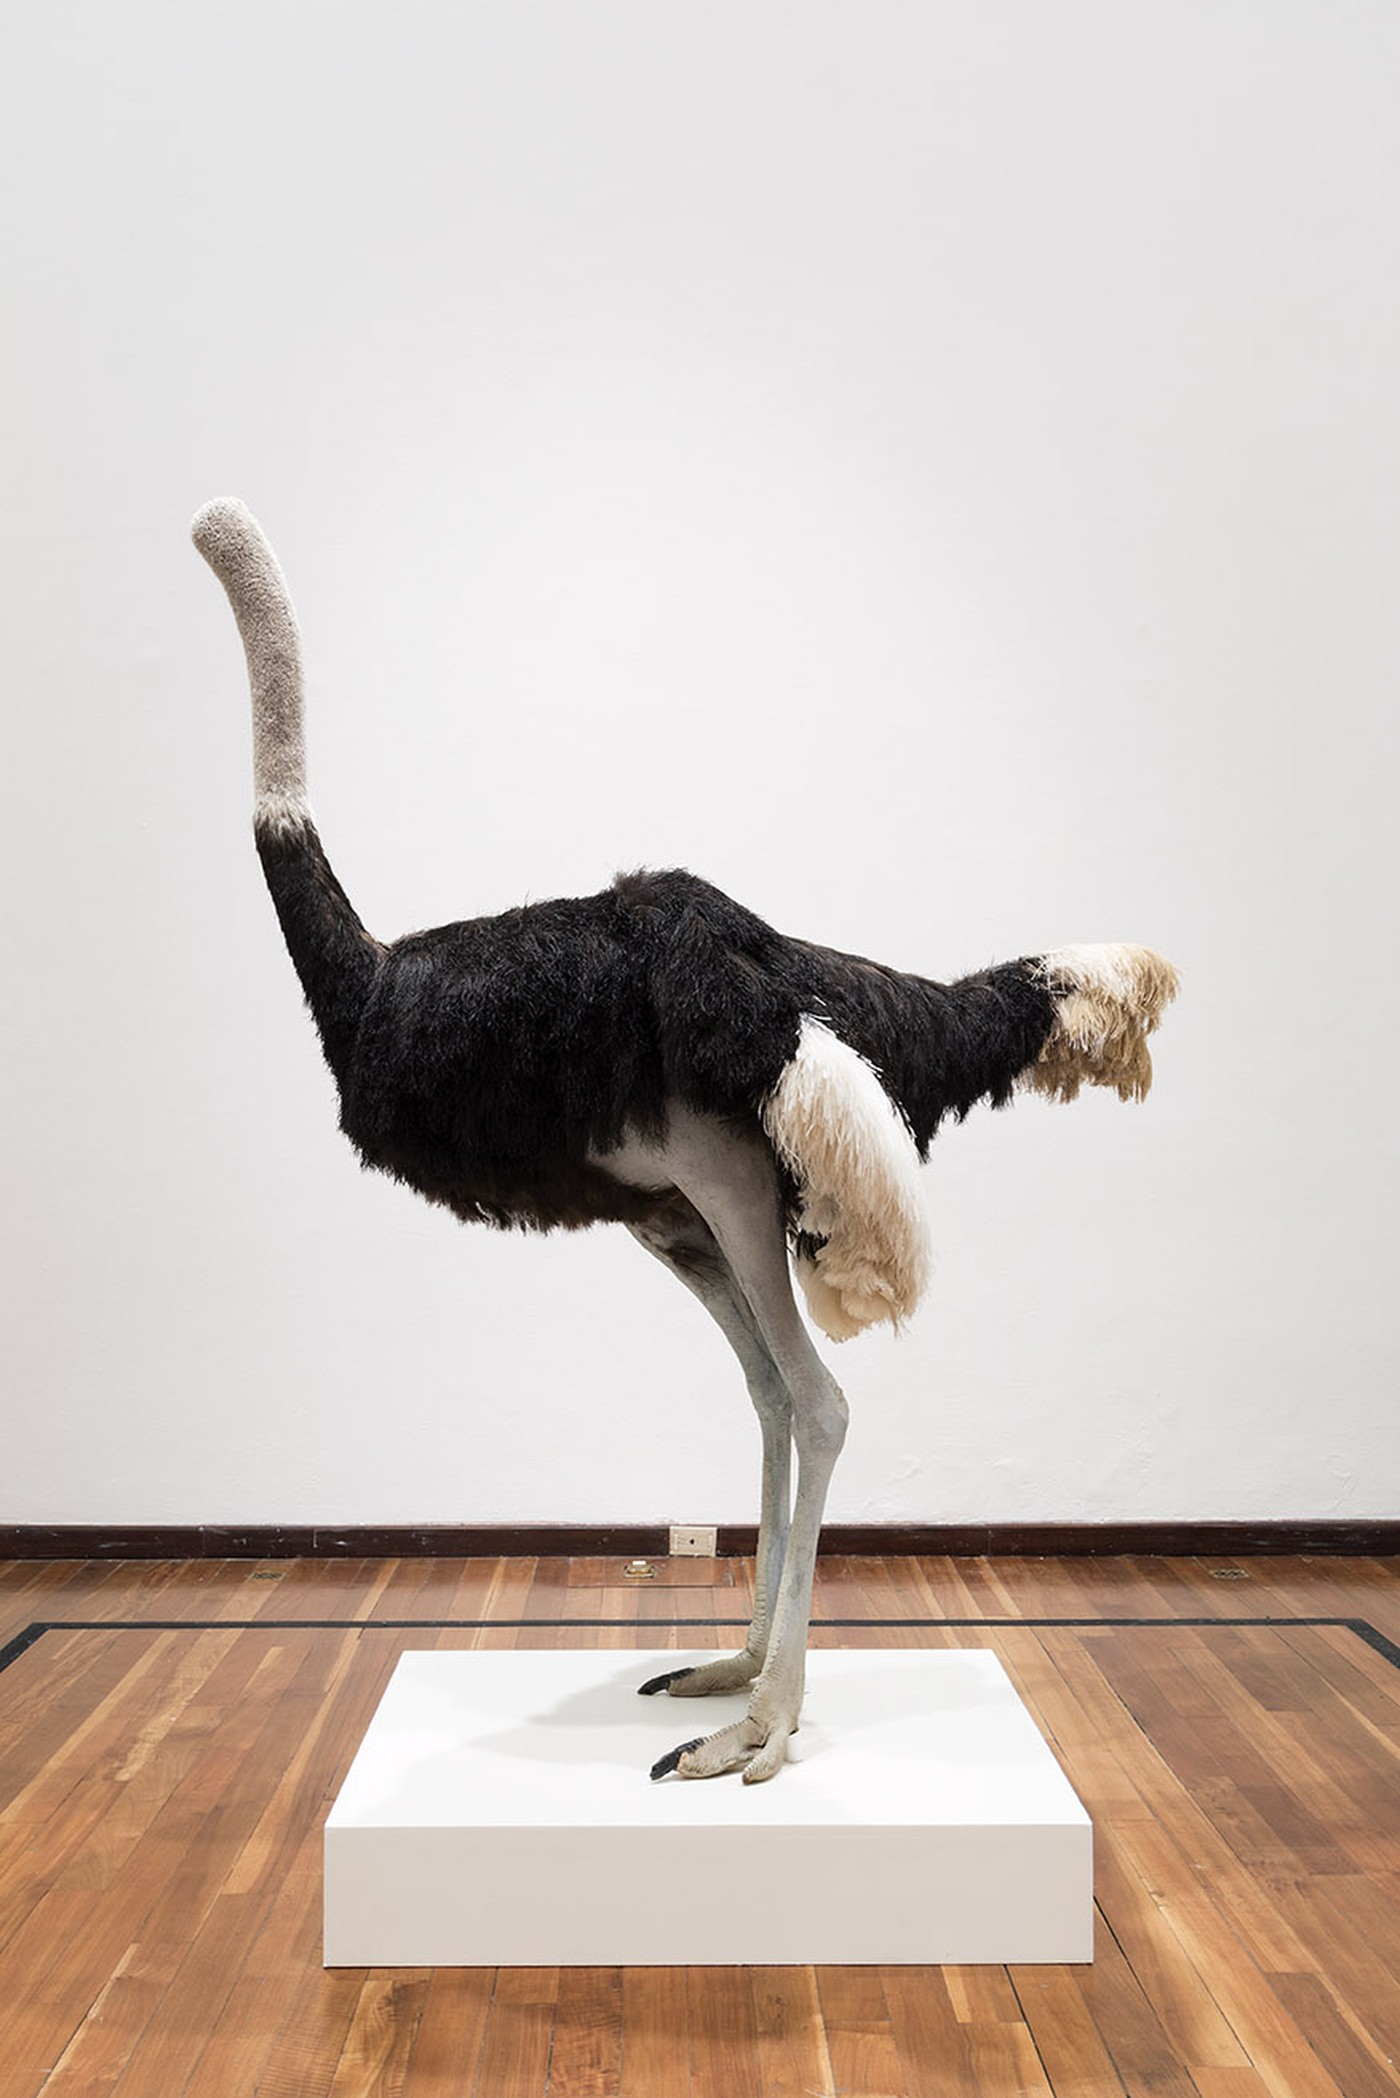 David Shrigley: Lose Your Mind. Ostrich, 2009 at Instituto Cultural Cabañas, Guadalajara, Mexico, November 2015. © David Shrigley. Courtesy of Instituto Cultural Cabañas and British Council. Photo by Marcos García